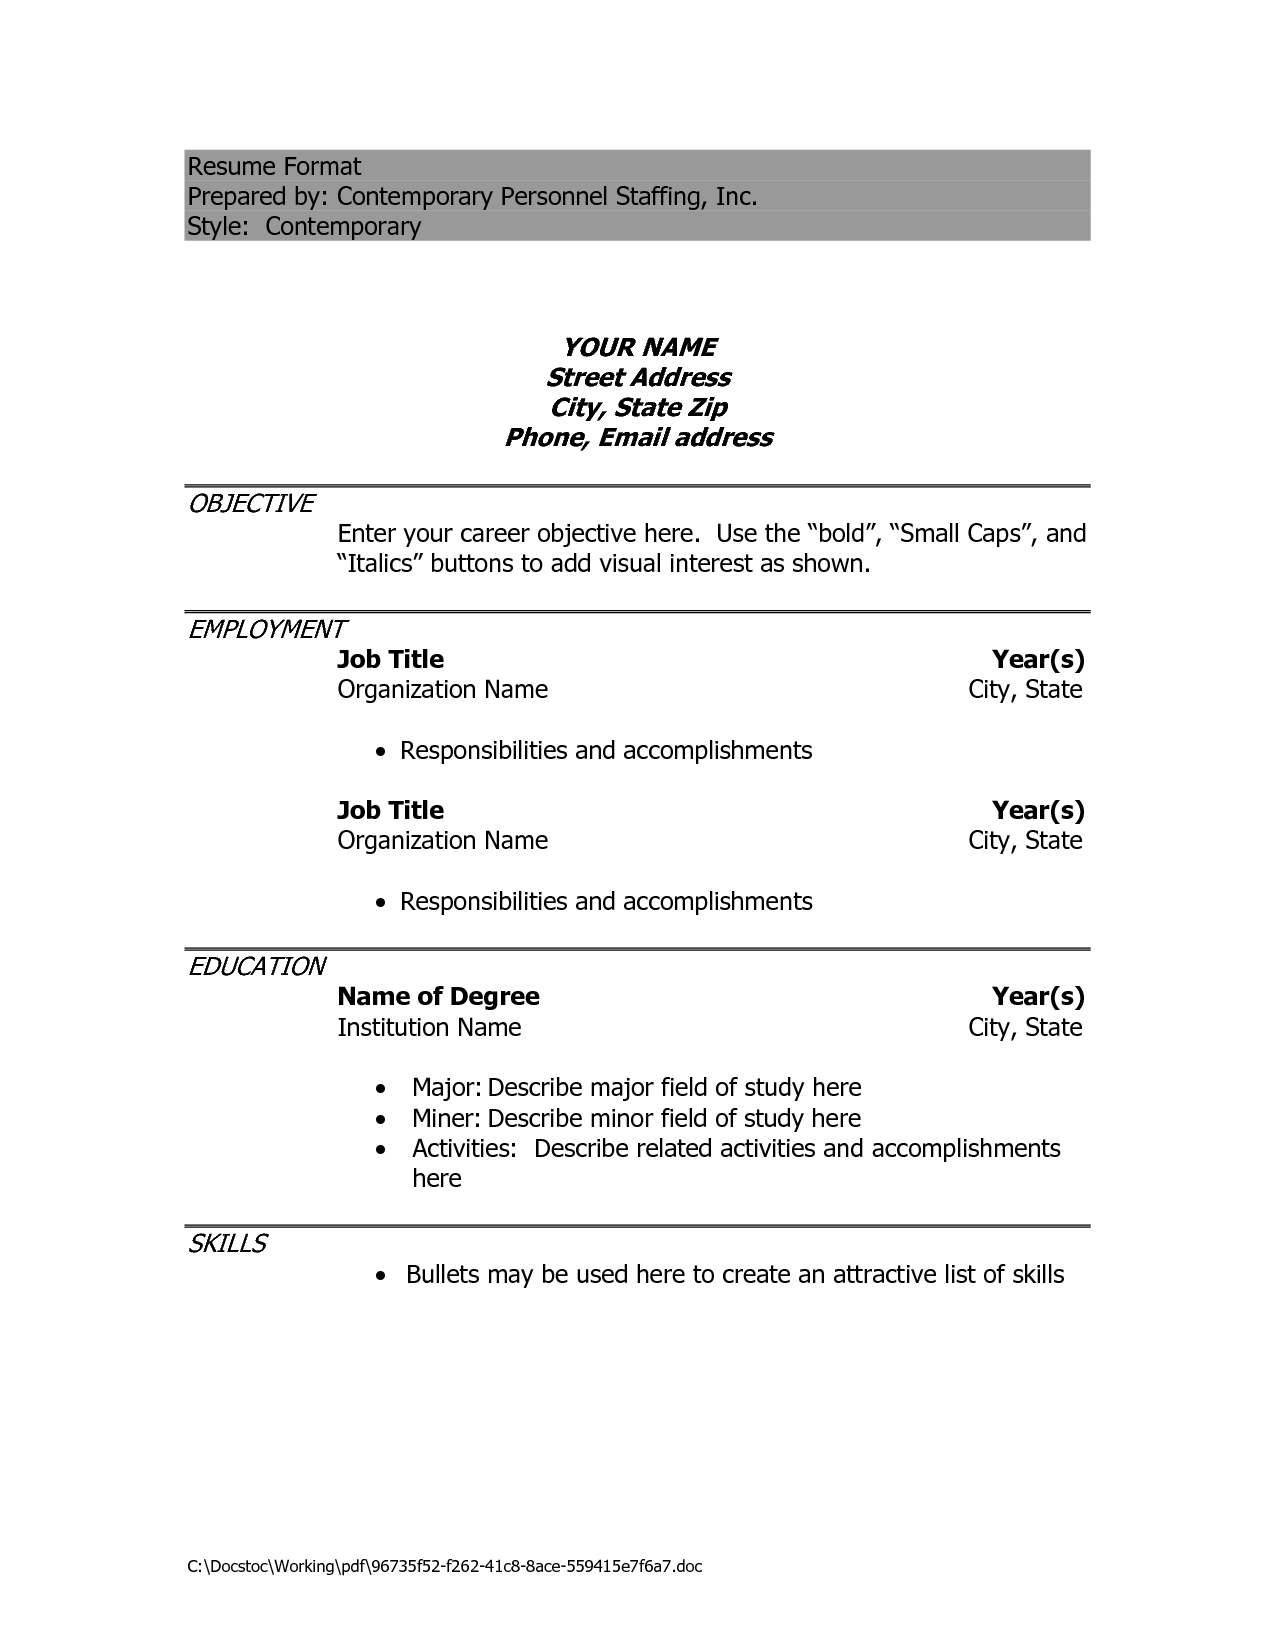 Resume Format For Teachers Doc File Resume Format For Teachers Doc